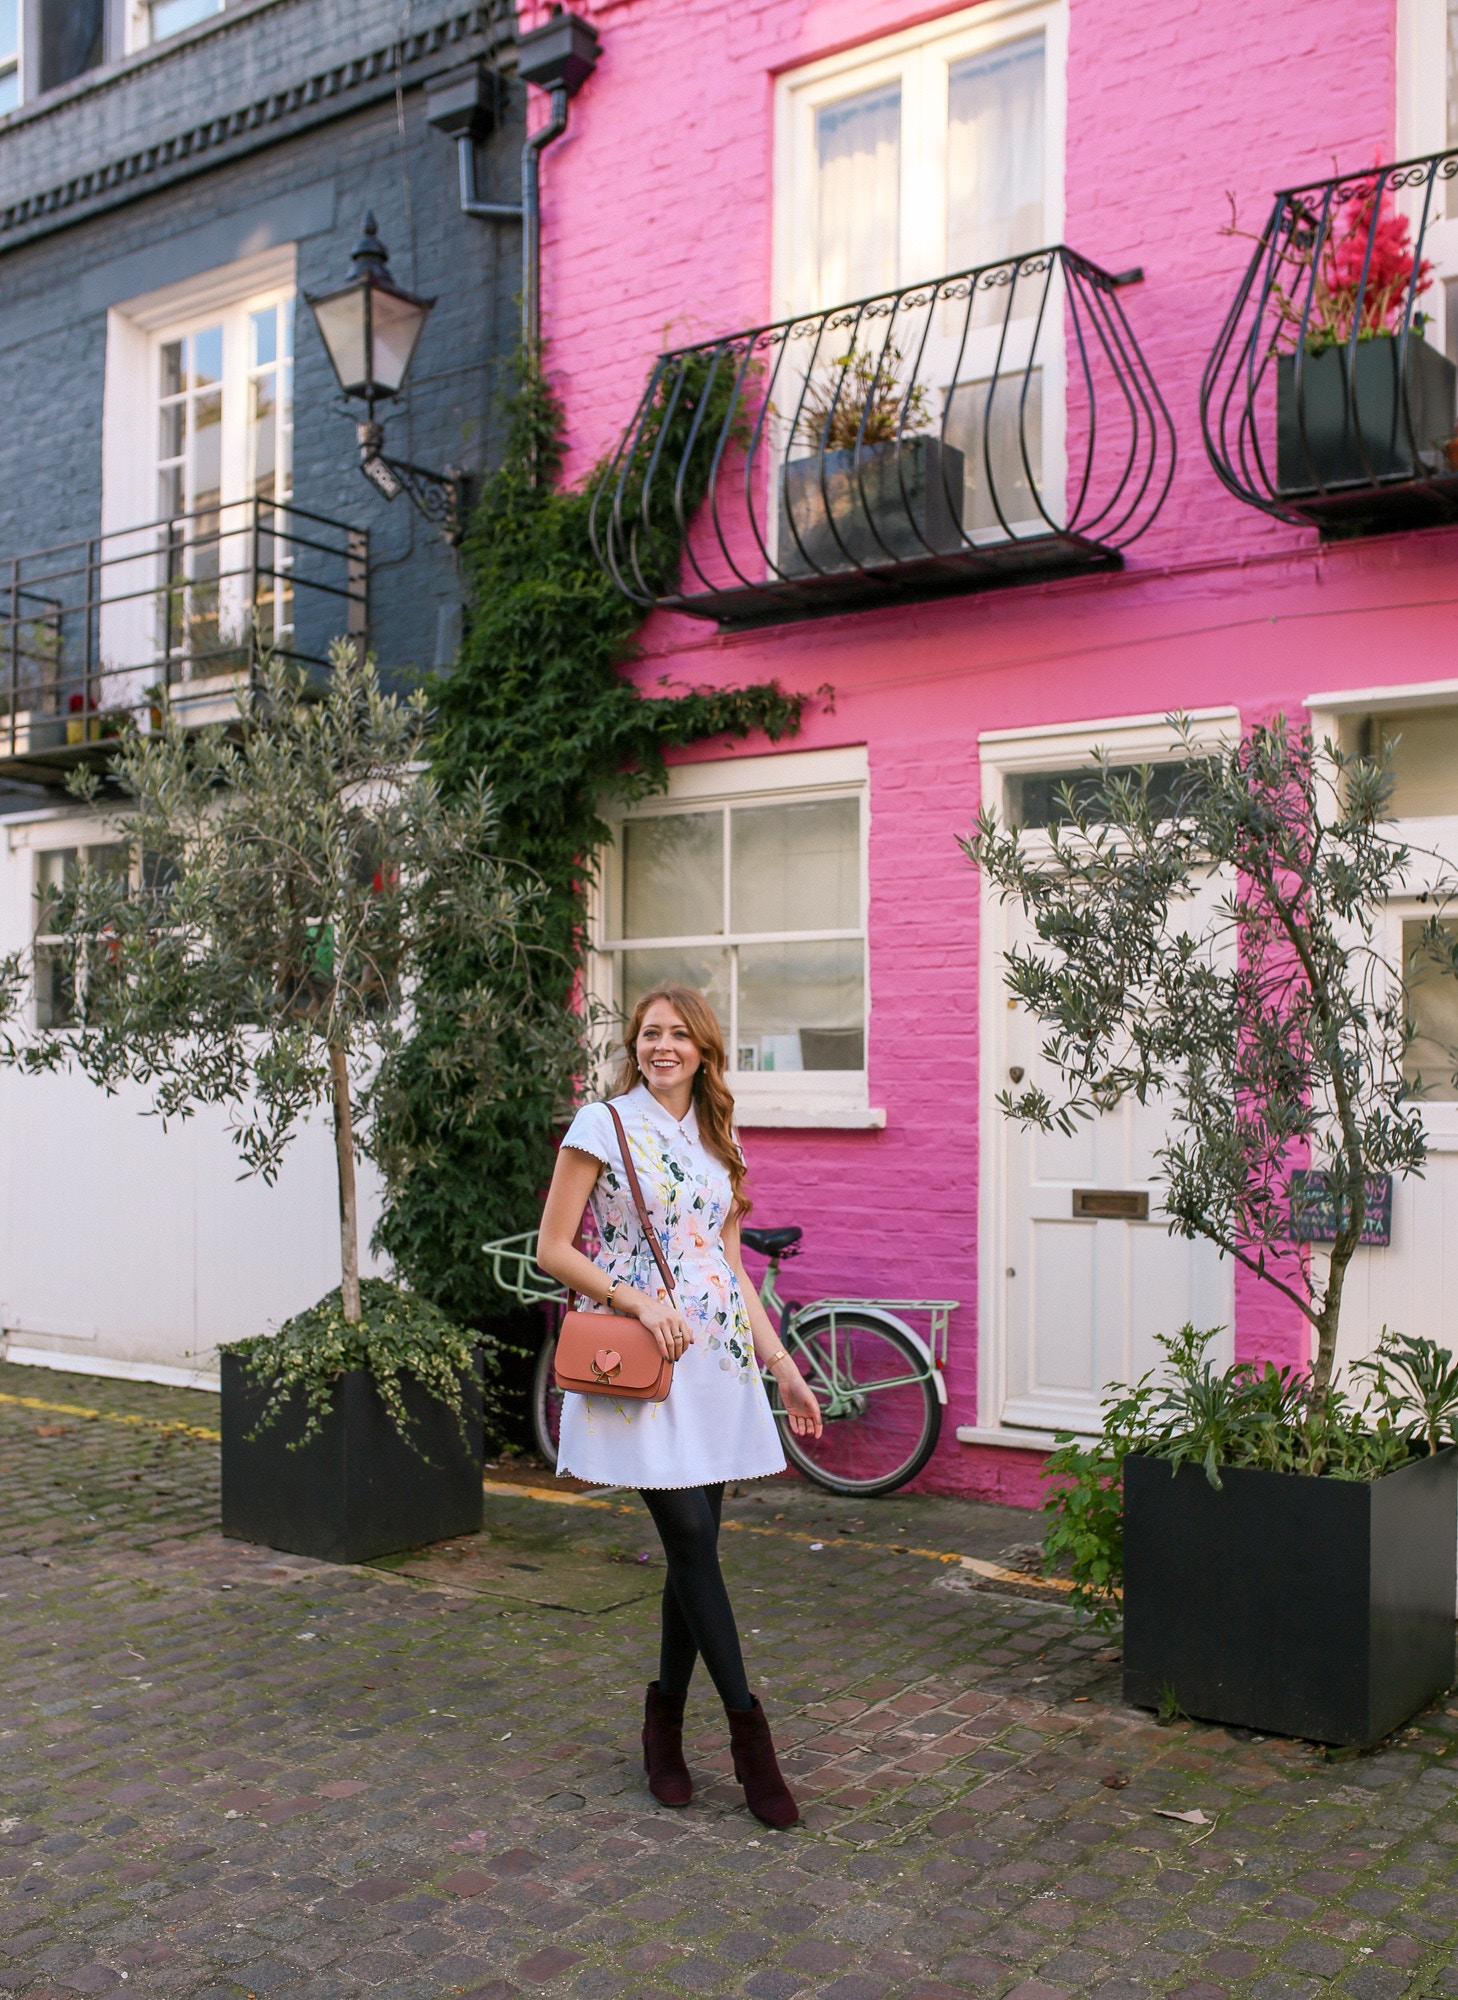 St. Luke's Mews pink house from Love Actually